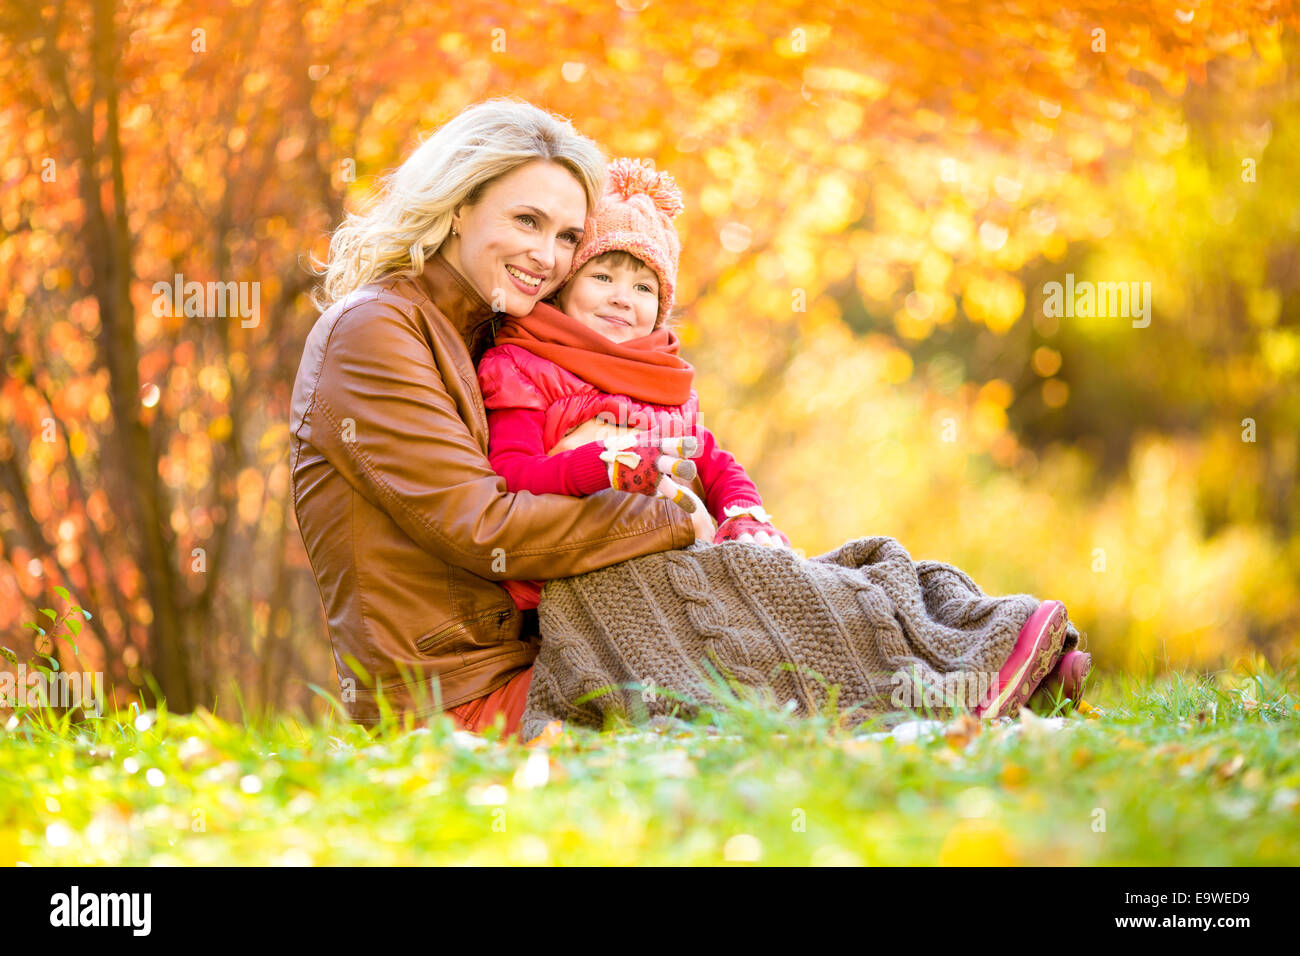 Happy mother and child outdoor in autumn park - Stock Image